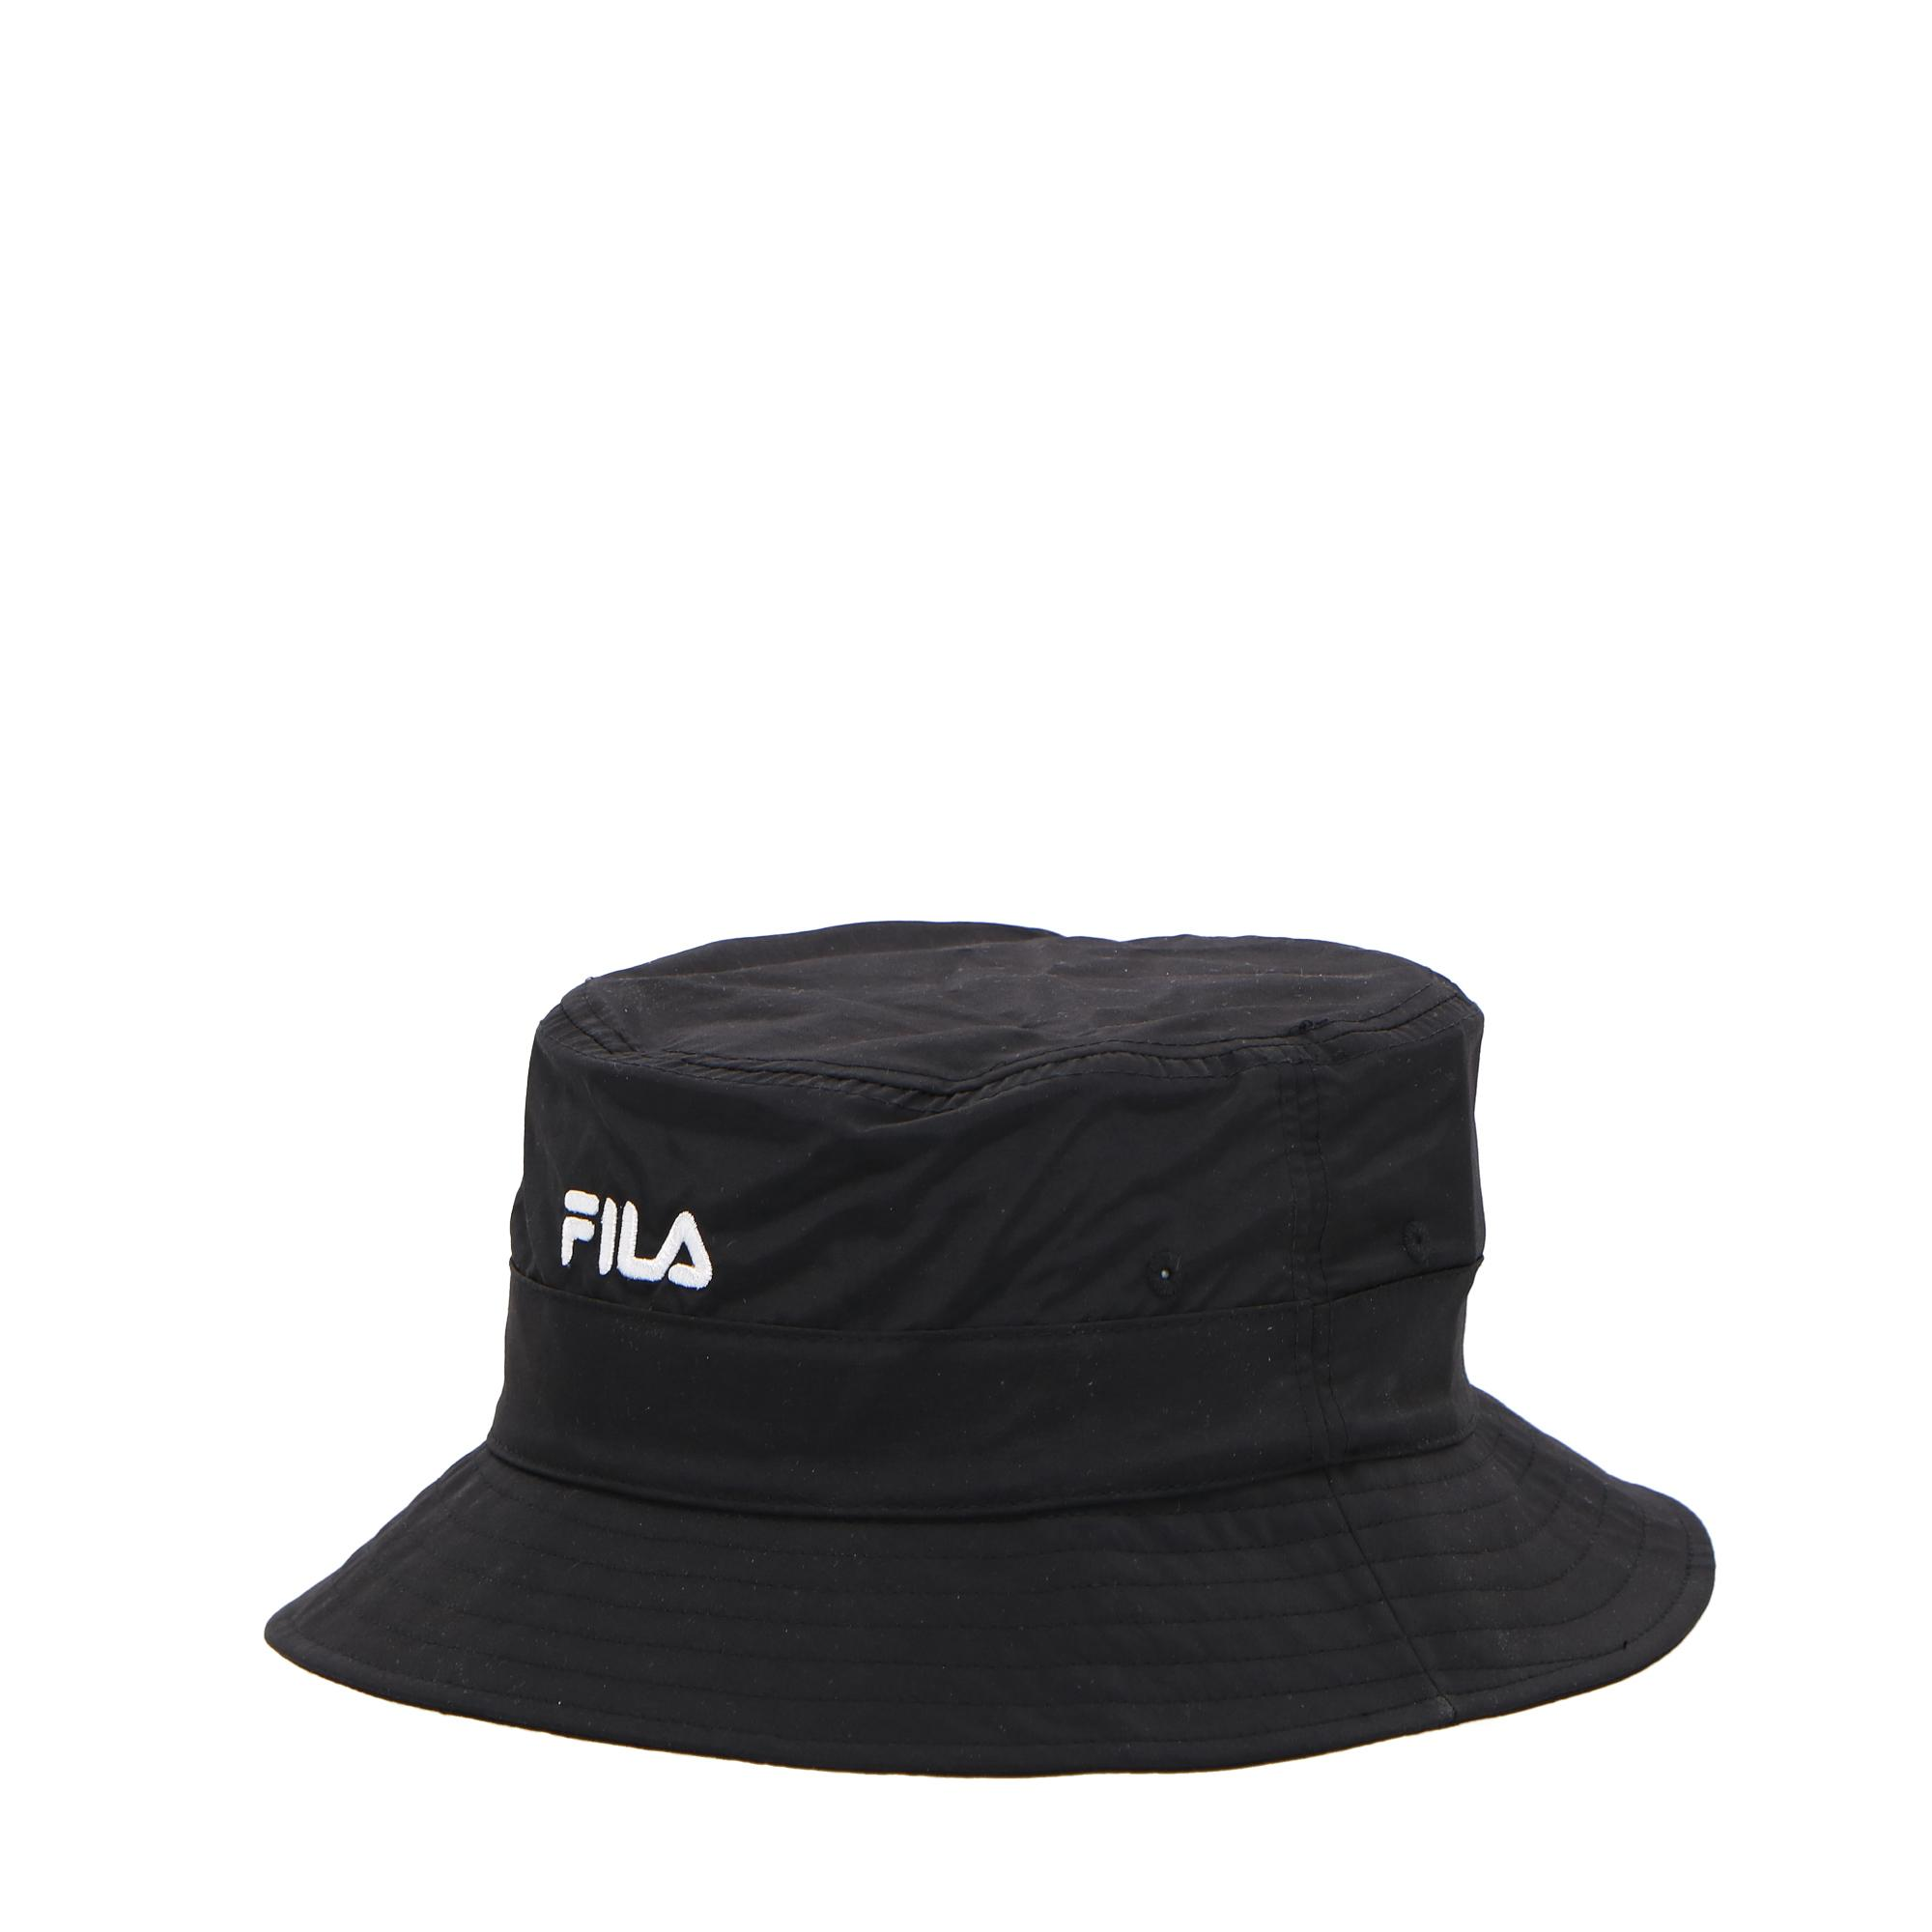 Fila Fishing Bucket Hat Whit Linear Logo Black